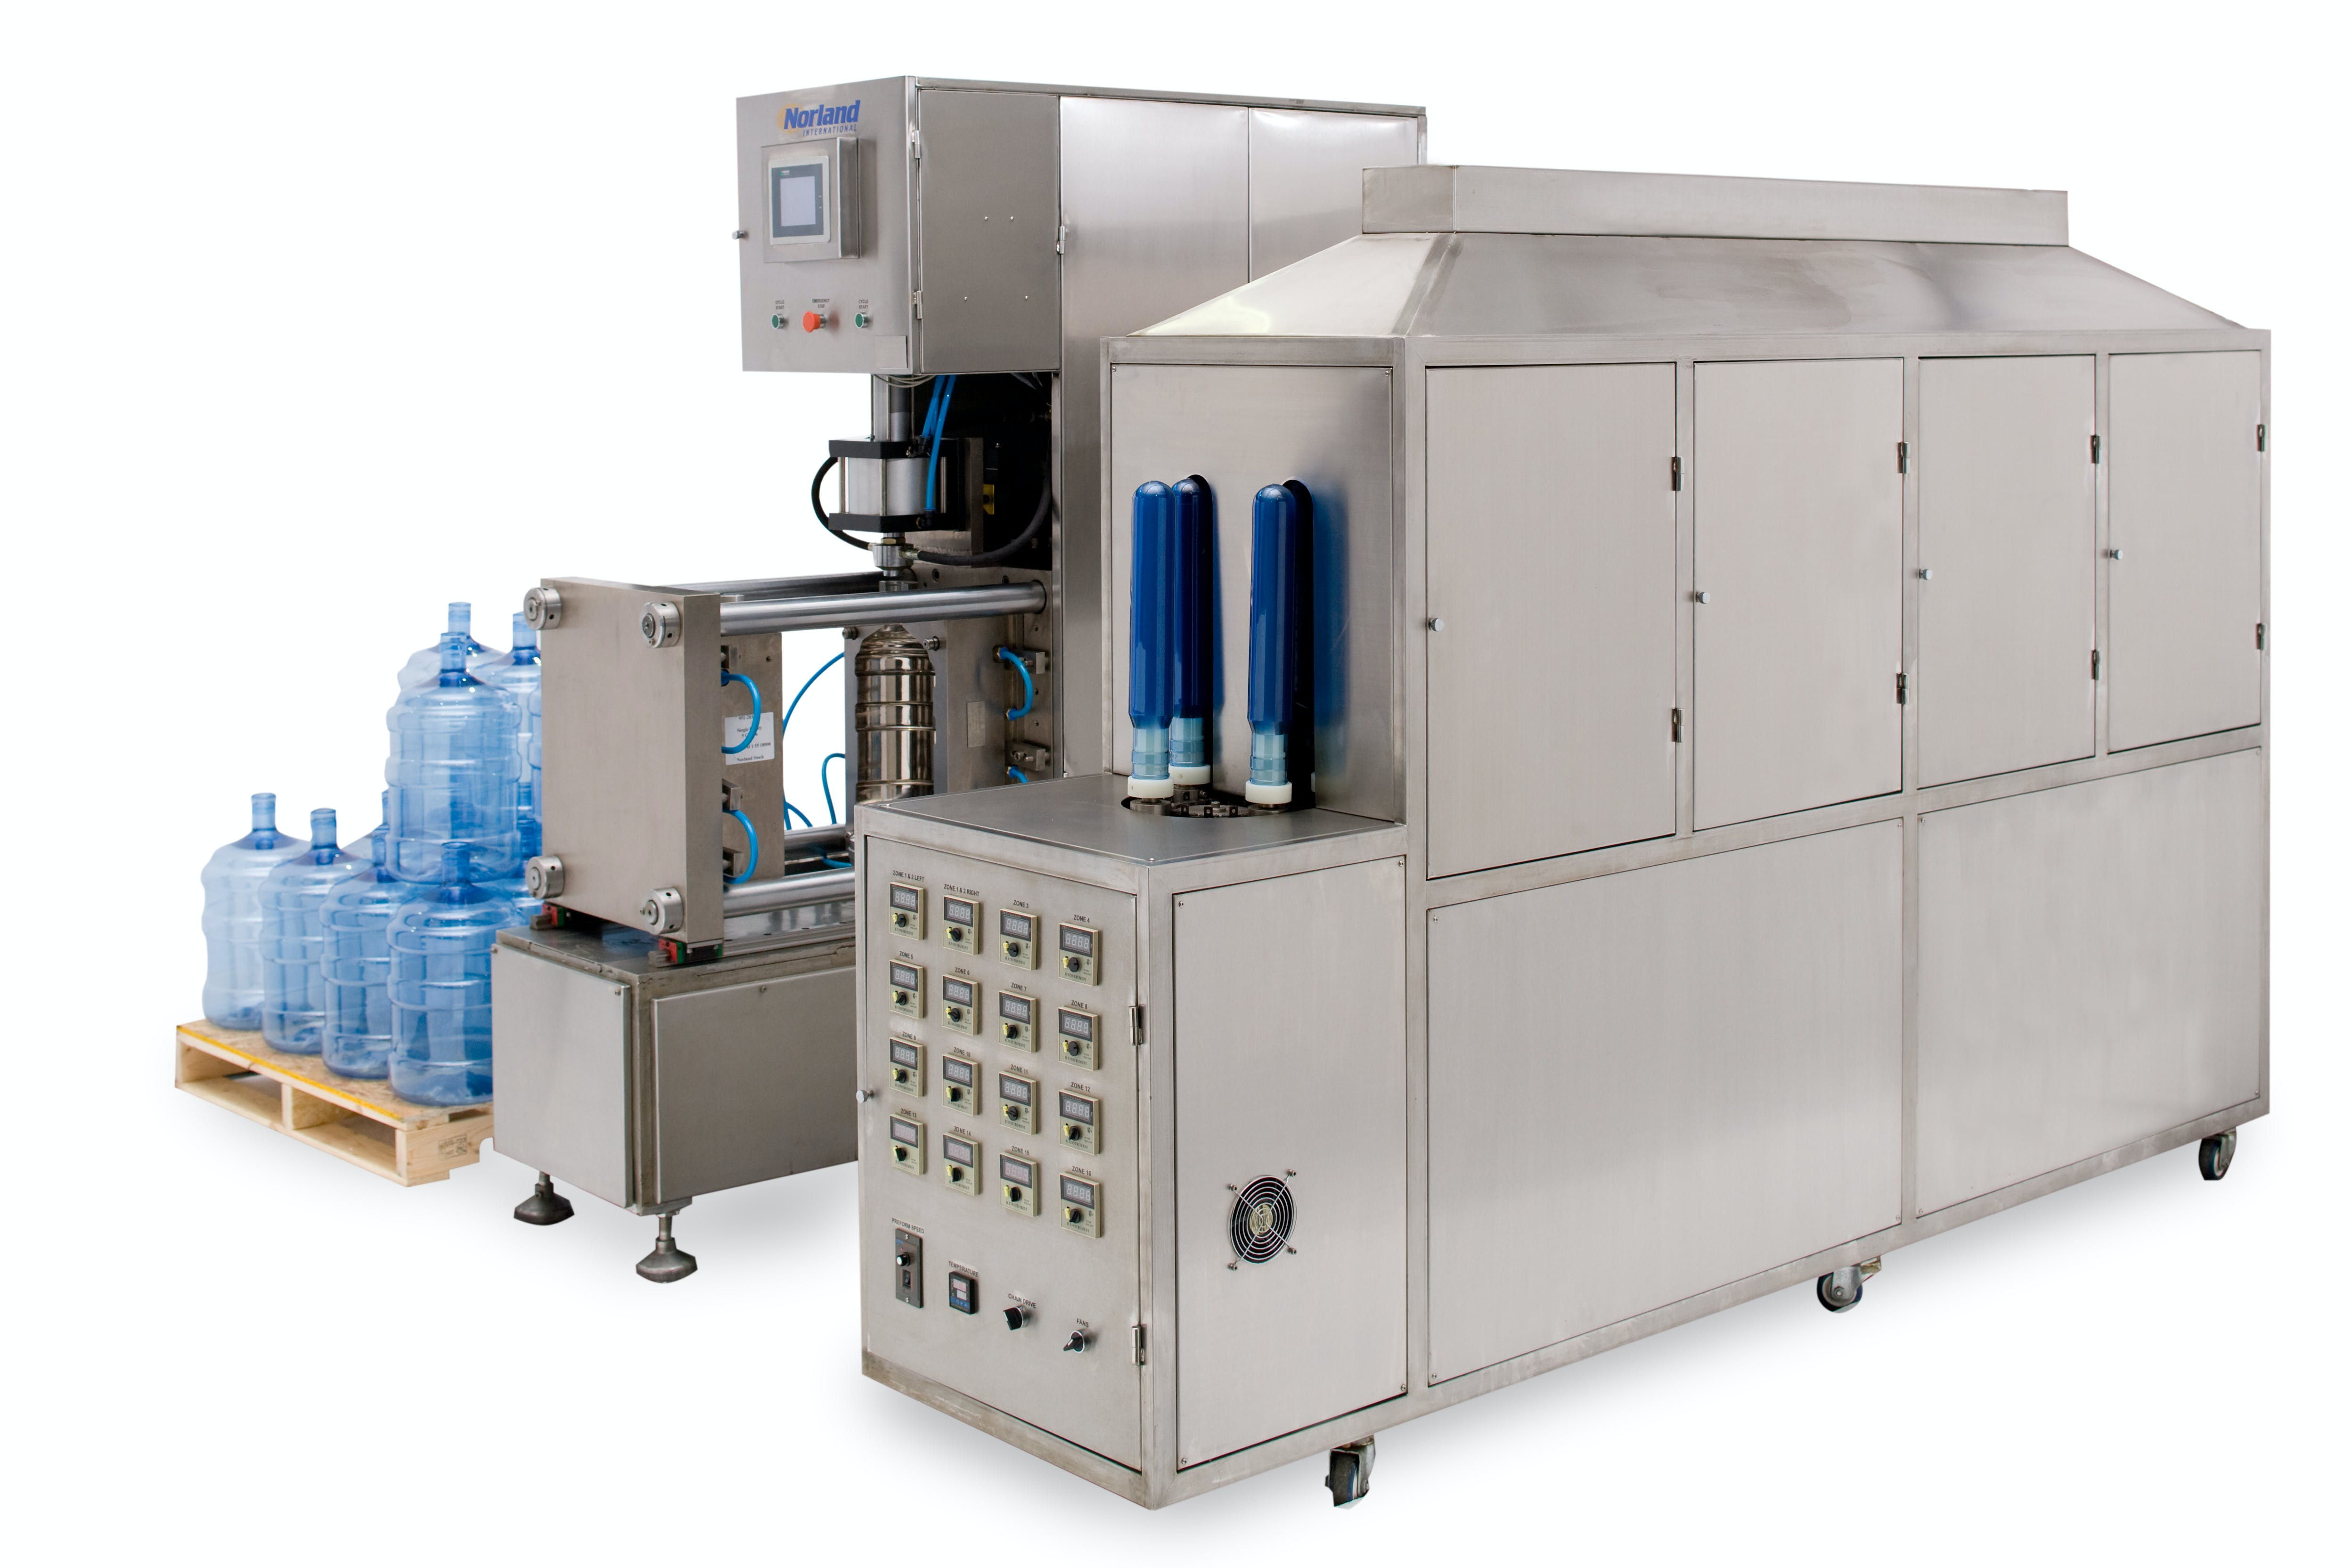 Blow Molder (Designed for water bottles only) Blow molding machine sold by American Beer Equipment